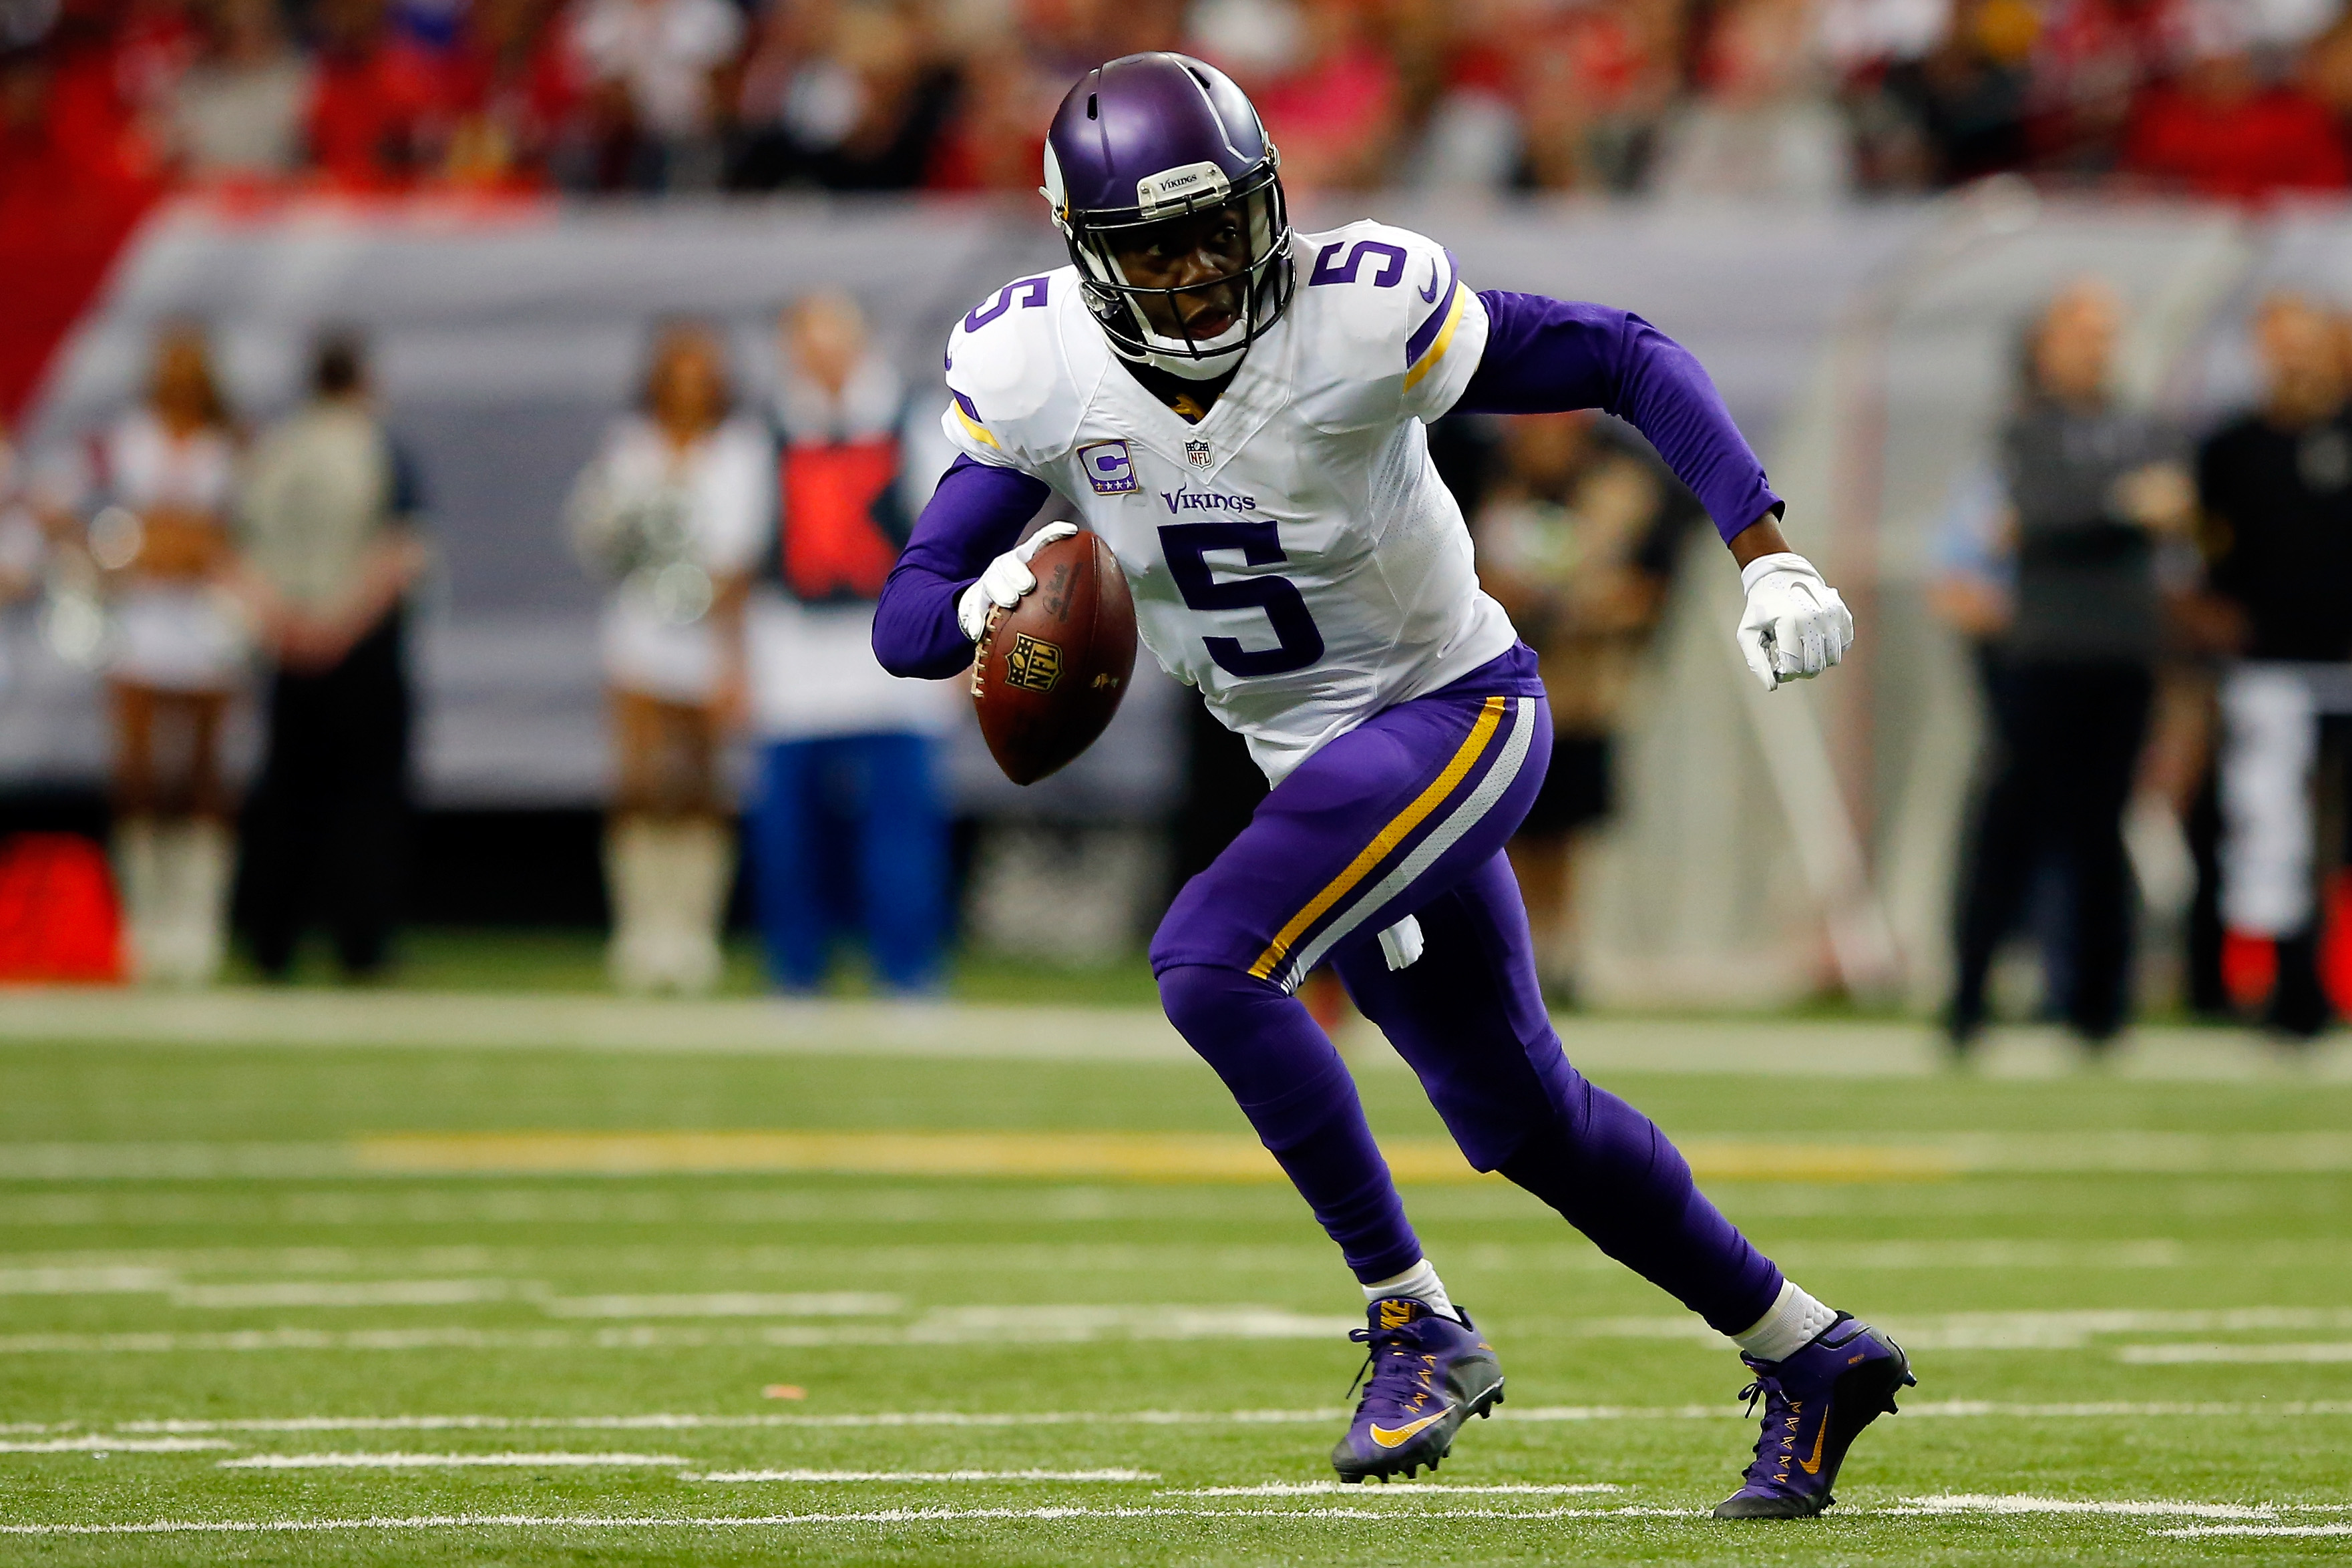 Photo By Kevin C Coxgetty Images Teddy Bridgewater